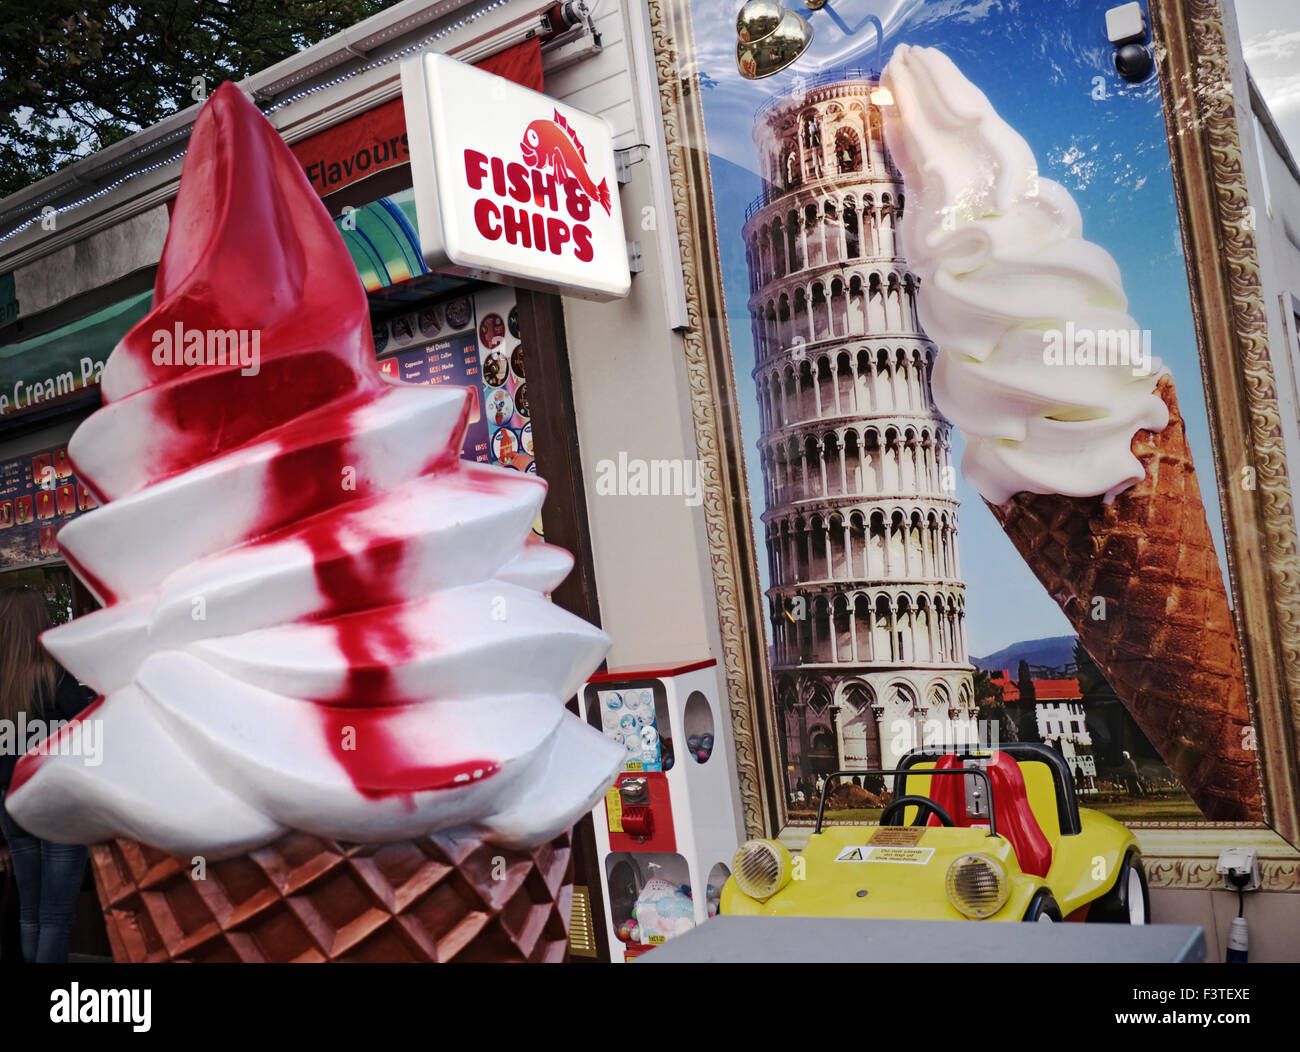 Contrasting point of sales display styles at kitsch tourist shop displaying fish & chips sign with ice cream - Stock Image